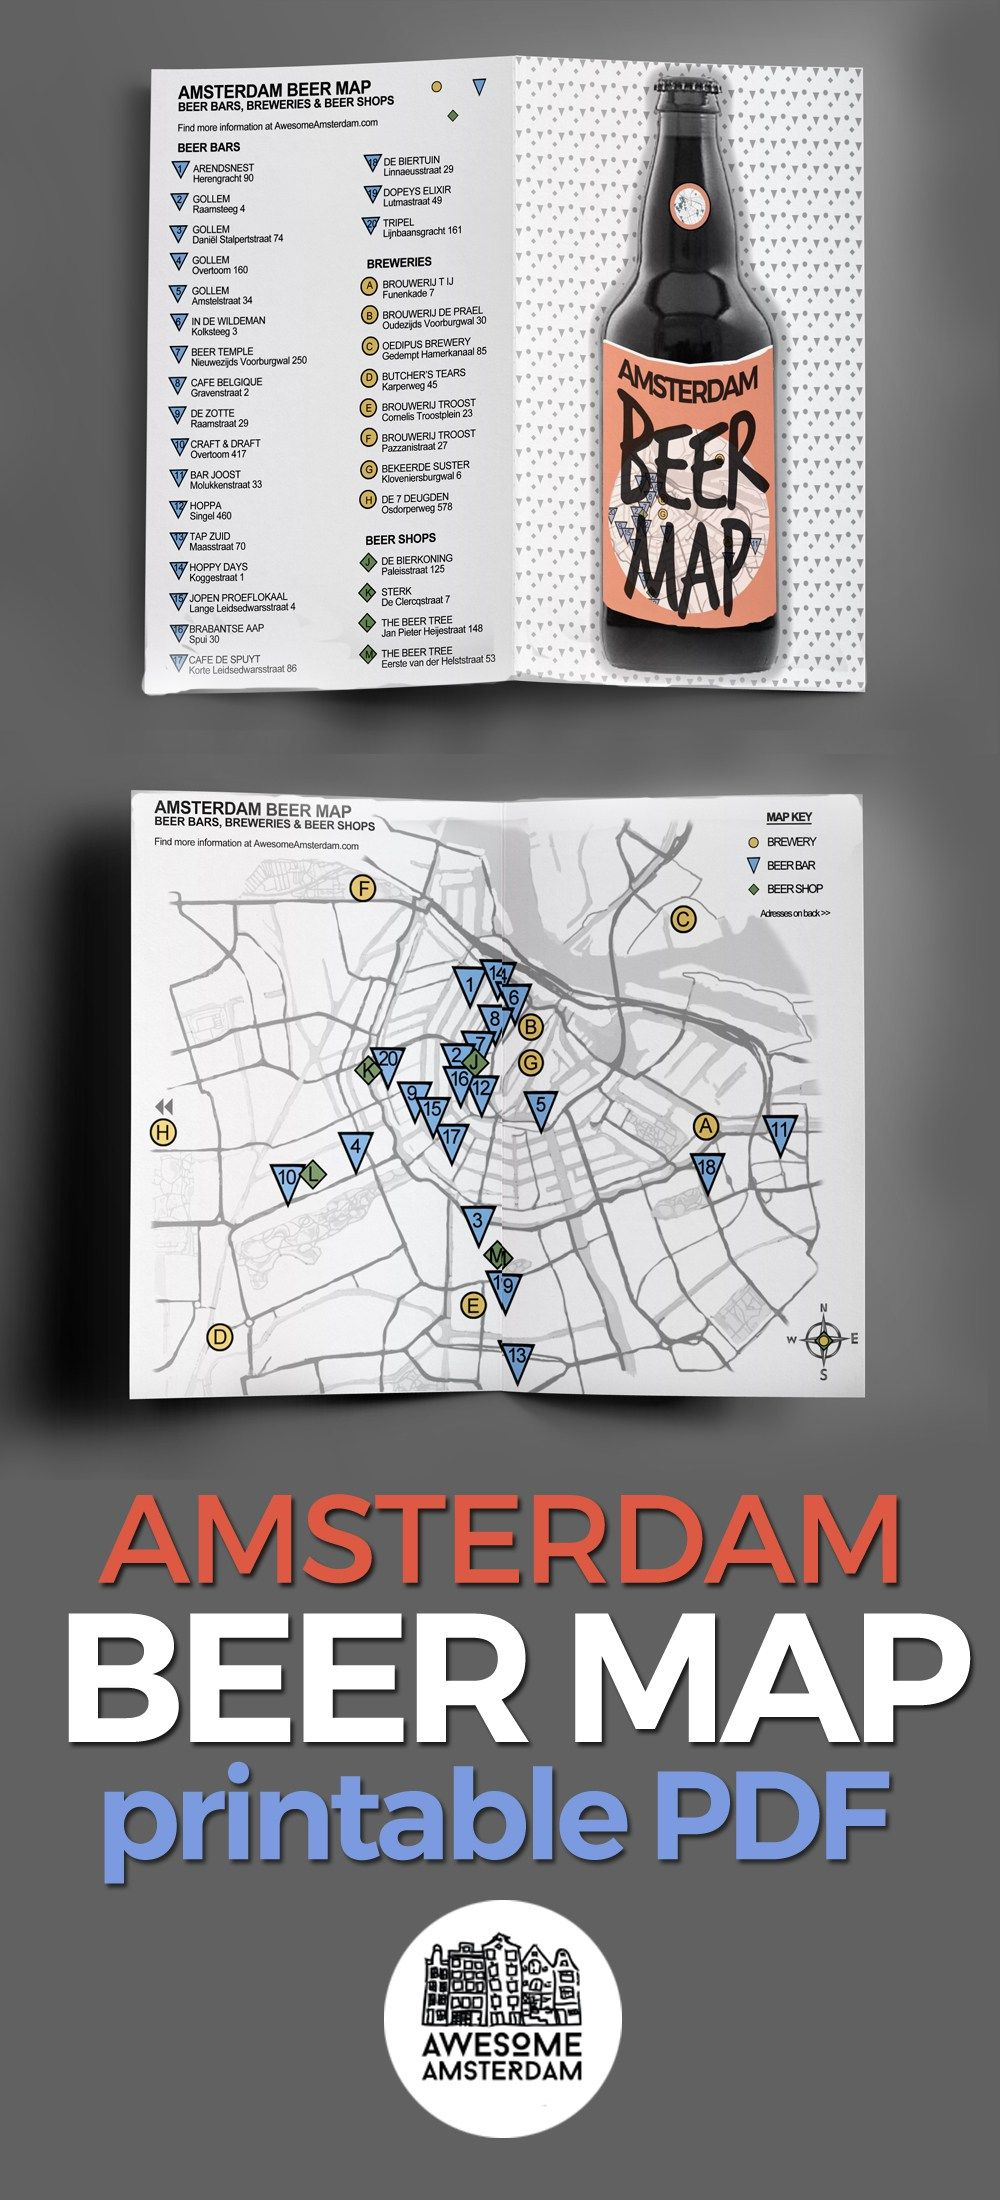 Shopping SPECIALTY BEER BARS IN AMSTERDAM u2022